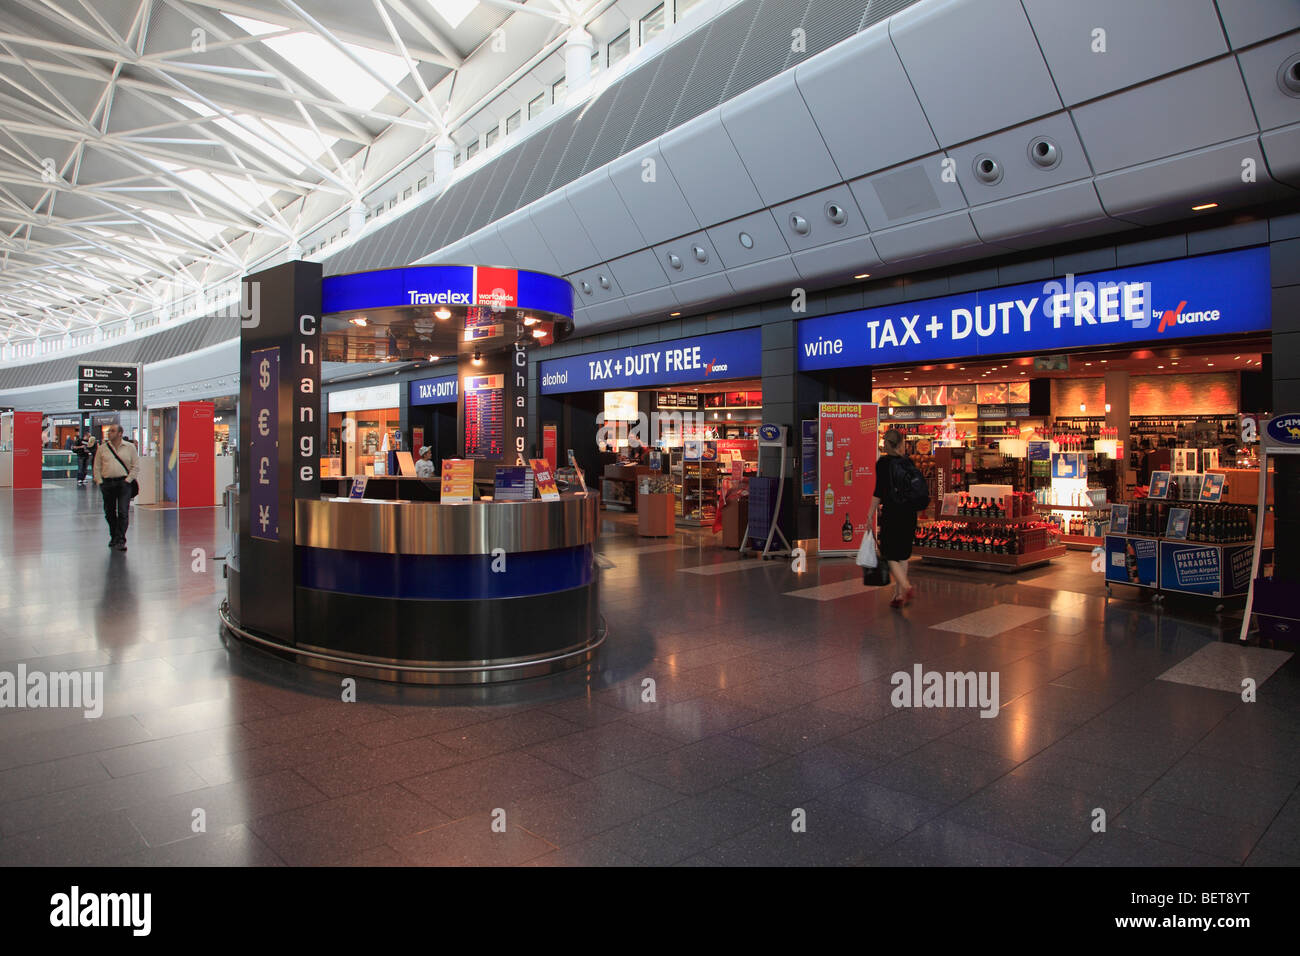 Switzerland, Zurich, airport, duty free shopping area - Stock Image